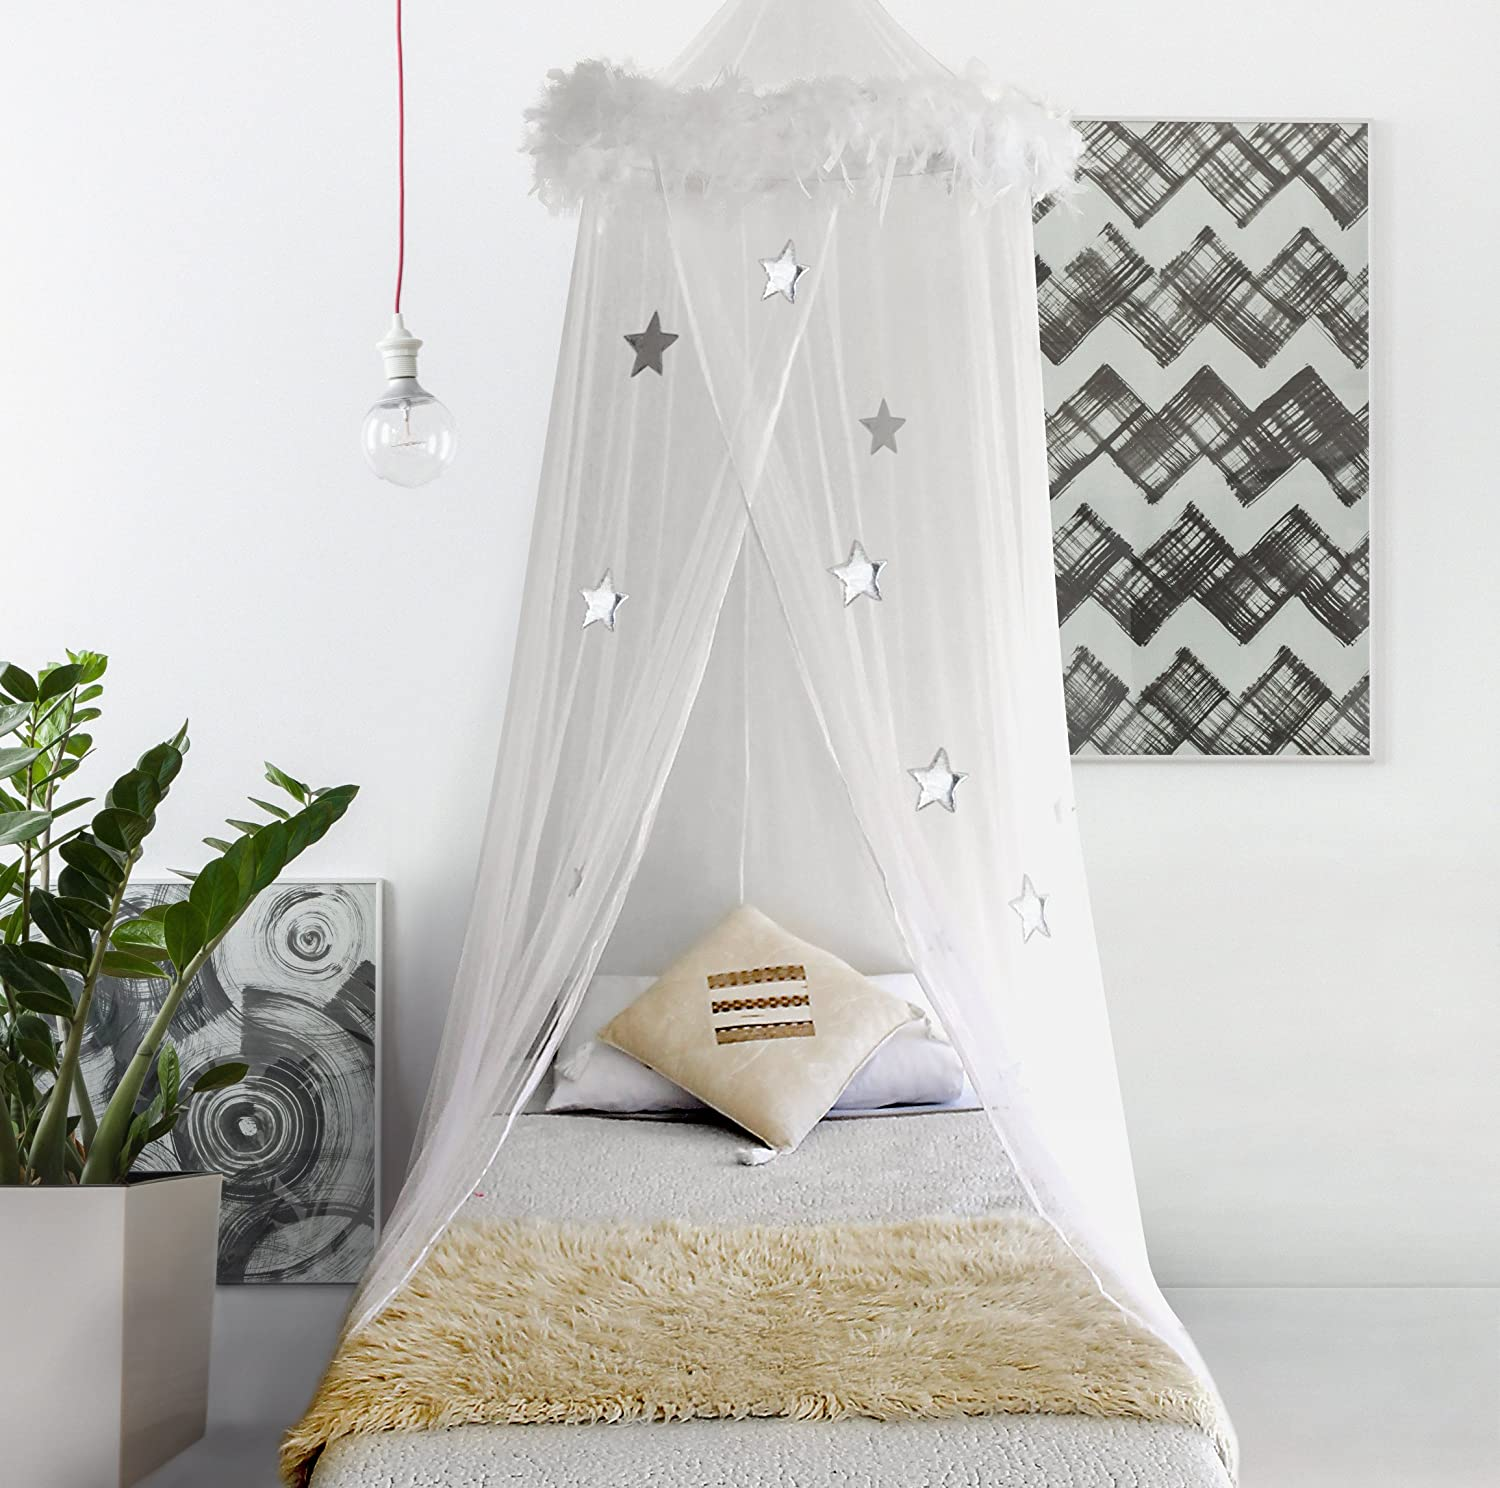 Amazon.com: Boho & Beach Bed Canopy Mosquito Net Curtains with Feathers and  Stars for Girls Toddlers and Teens, White: Home & Kitchen